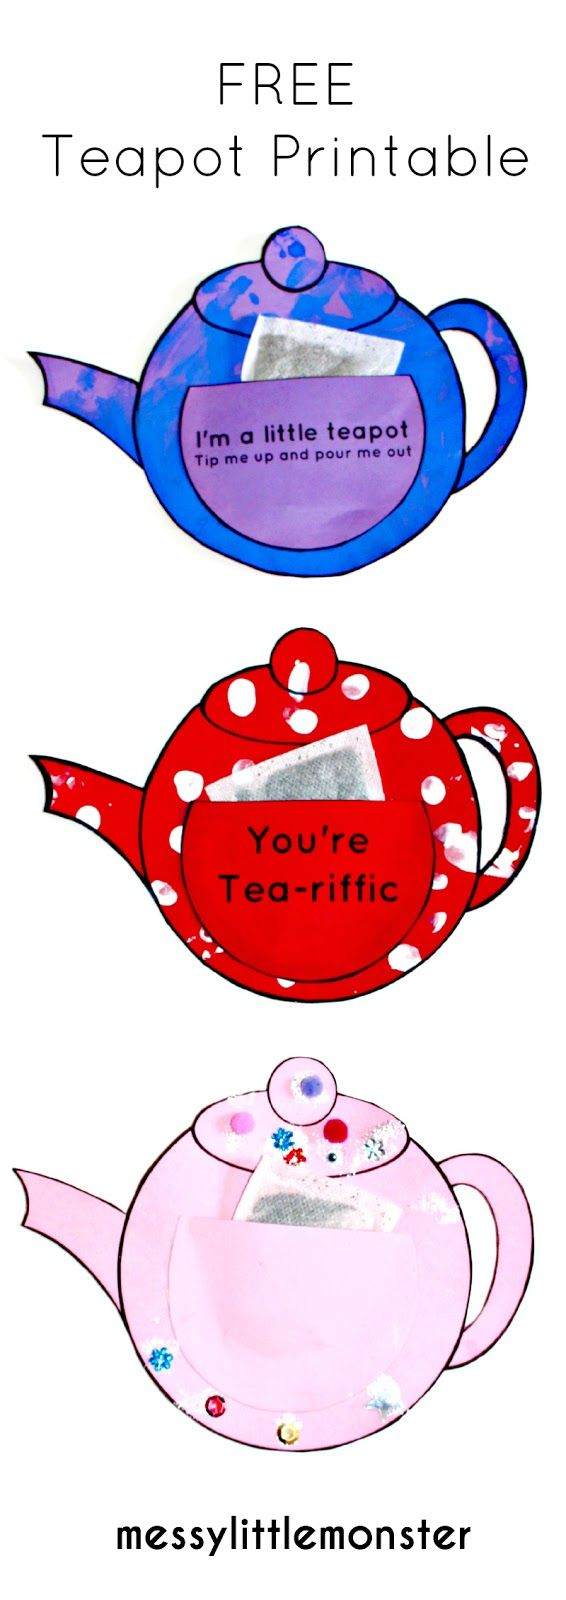 Teapot craft for kids with free printable.  A simple activity for mothers day, fathers day or teachers.  A  thank you card that babies, toddlers, preschoolers, eyfs can create.  Perfect activity for the nursery rhyme 'i'm a little teapot'.